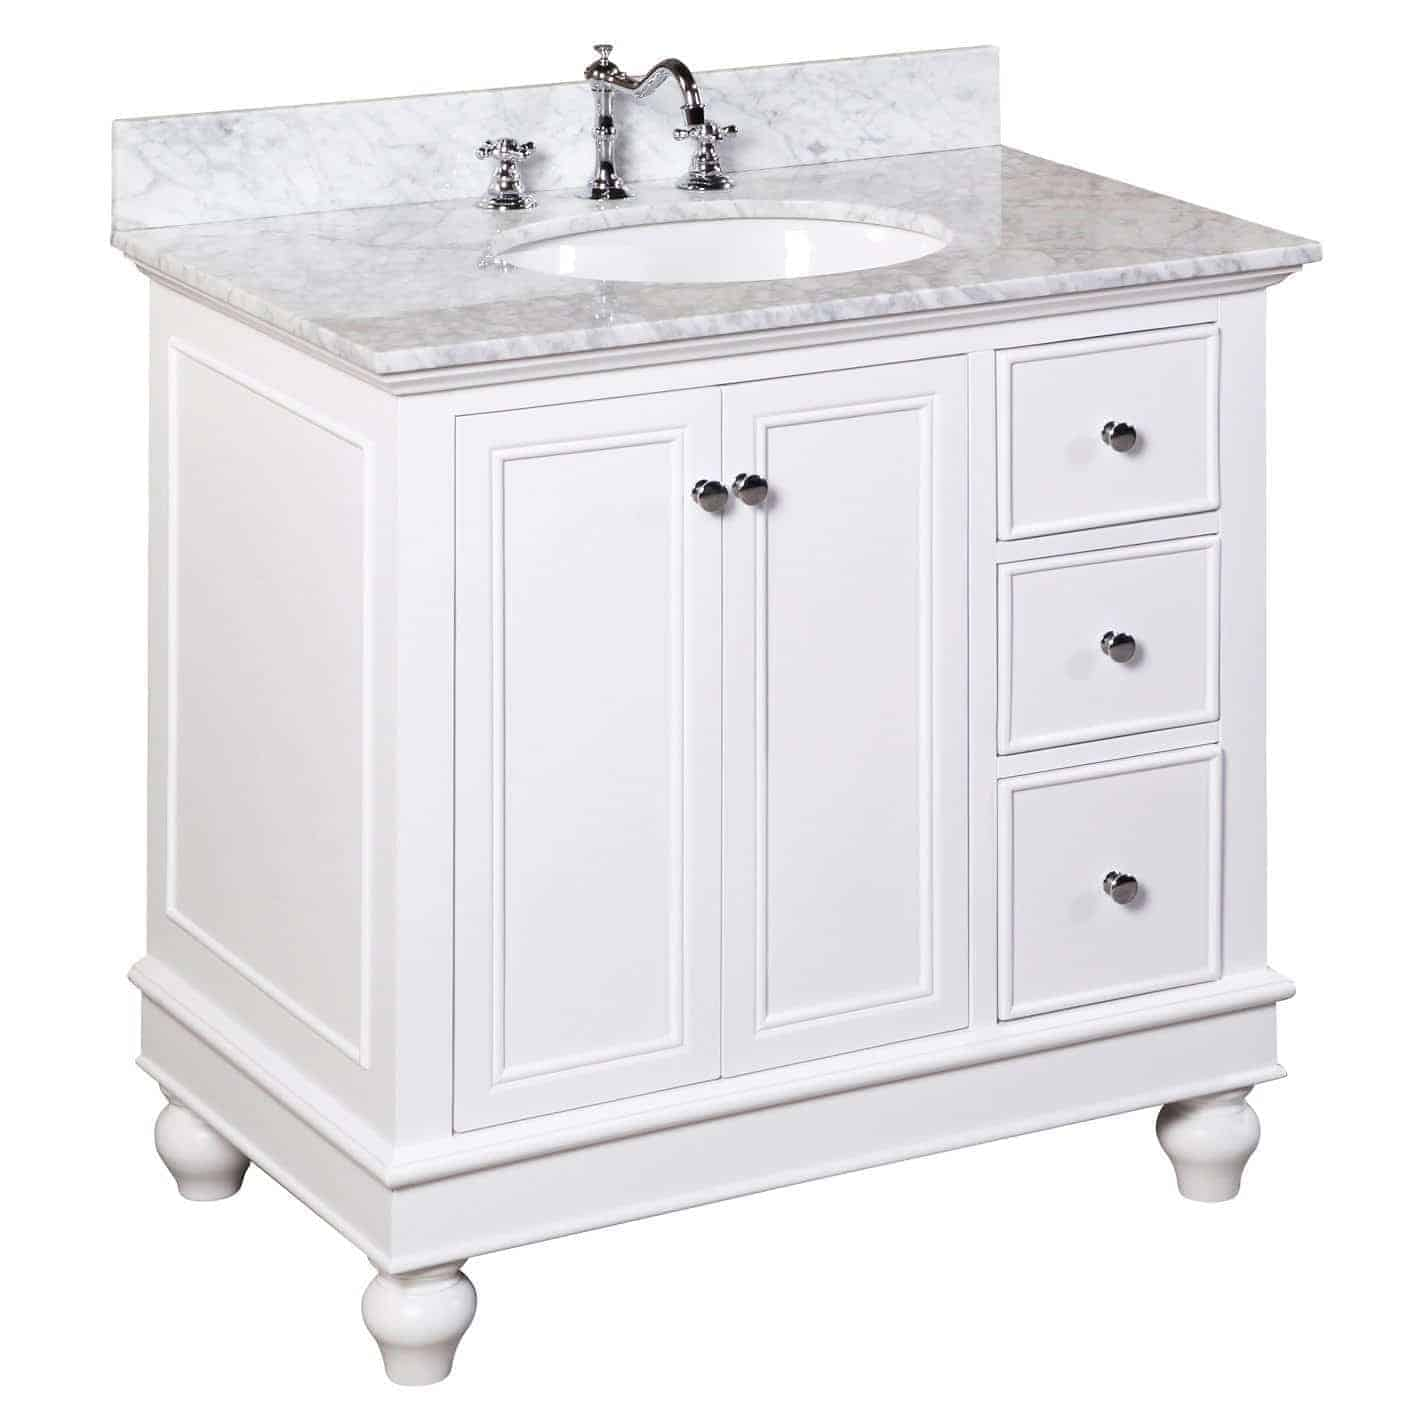 Best Wayfair Bella vanity